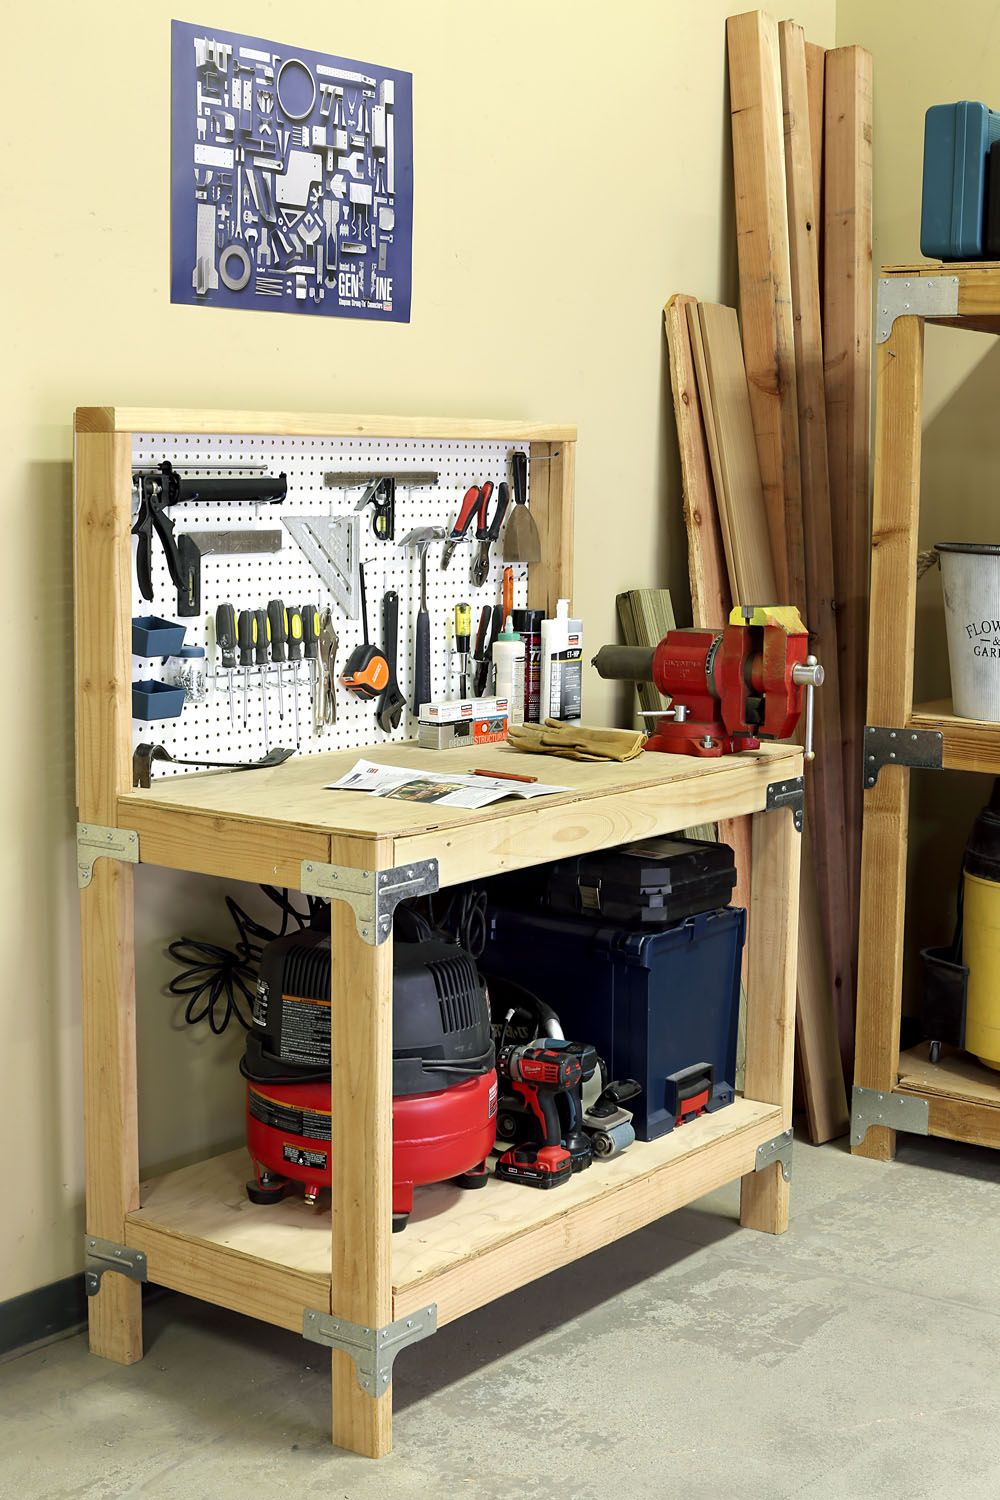 Wbsk Workbench   Google Search. Small WorkbenchDiy ...